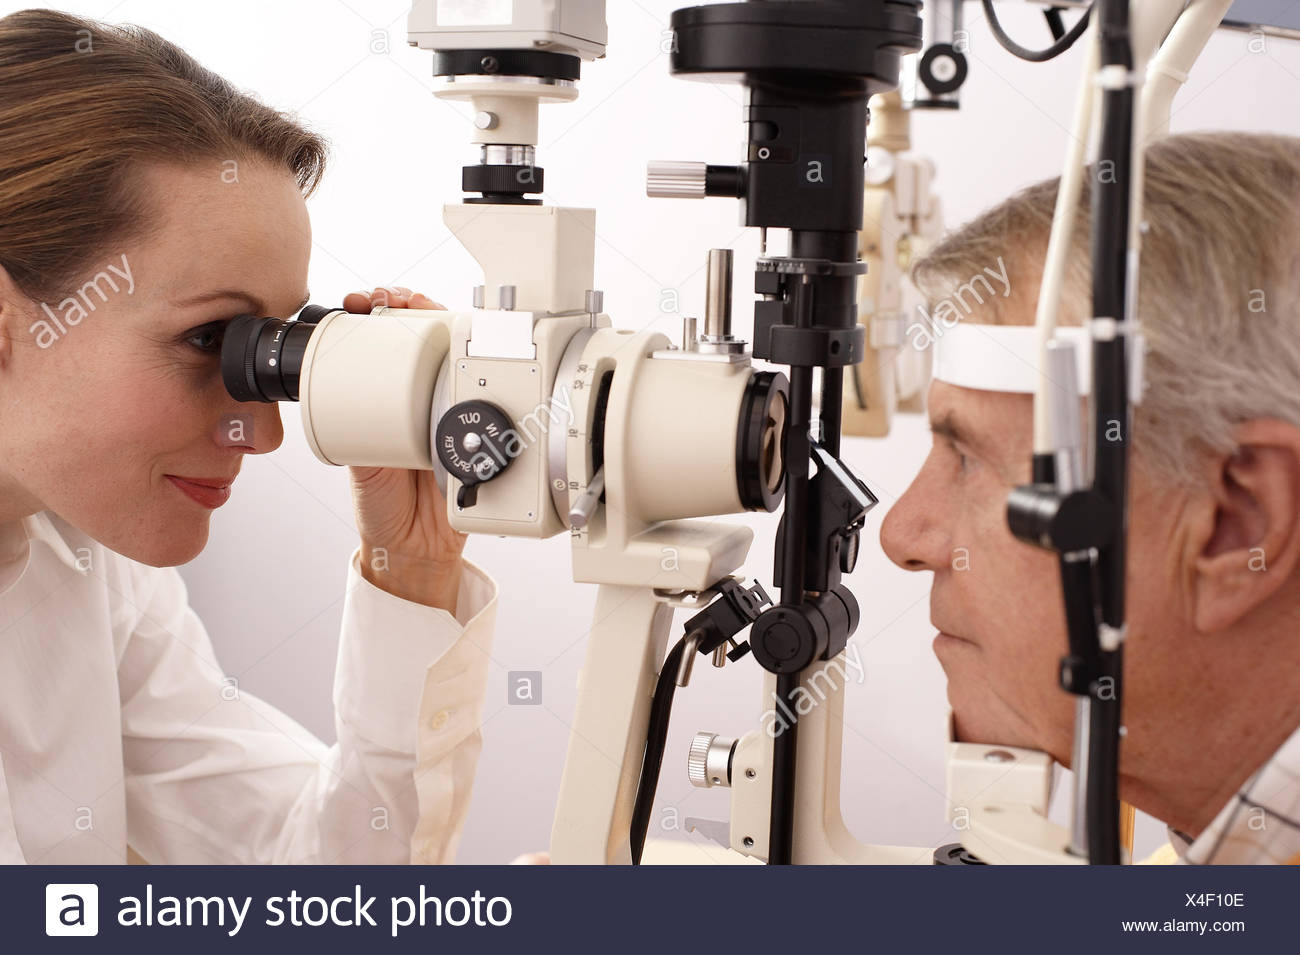 Optician performing eye exam on man - Stock Image